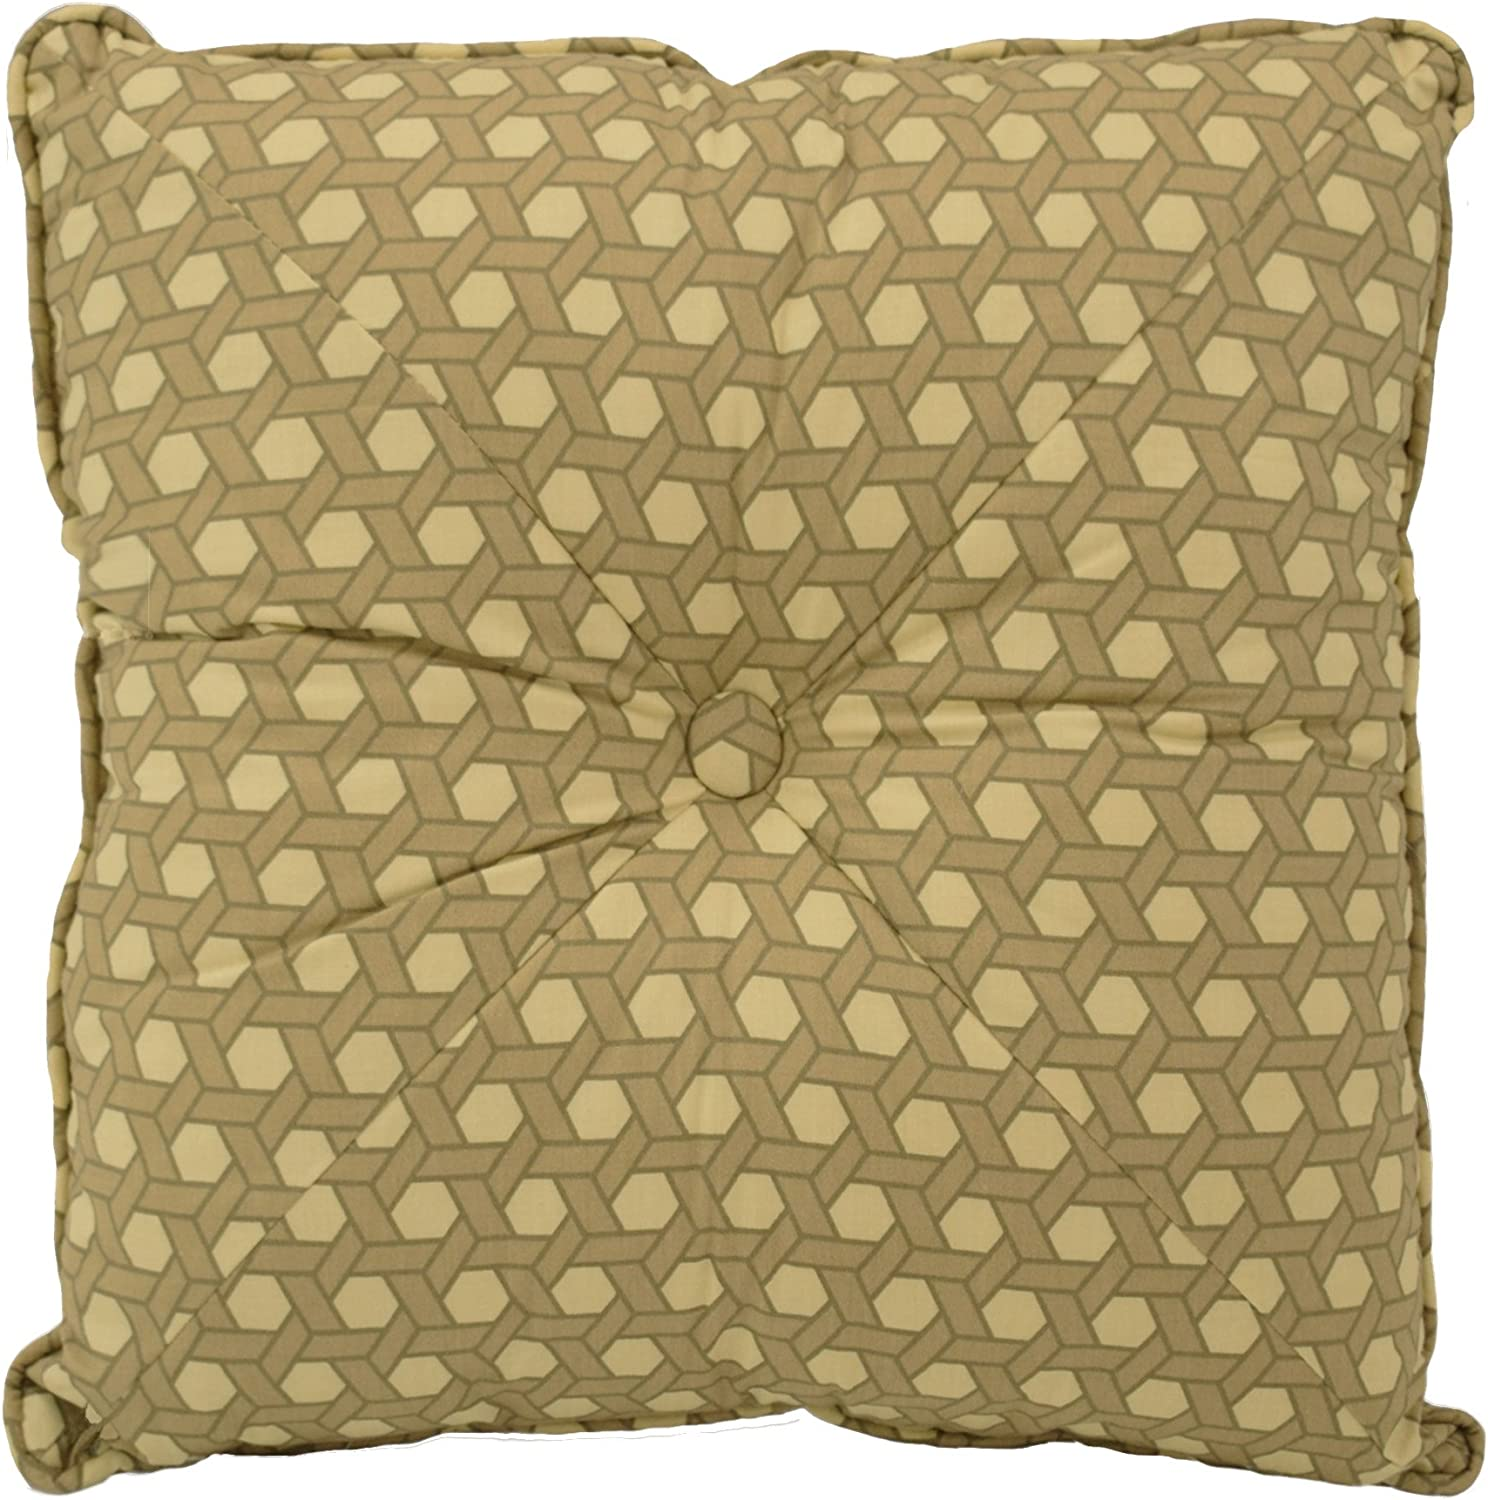 "Waverly Garden Glory Decorative Pillow, 16"" x 16"", Mist"